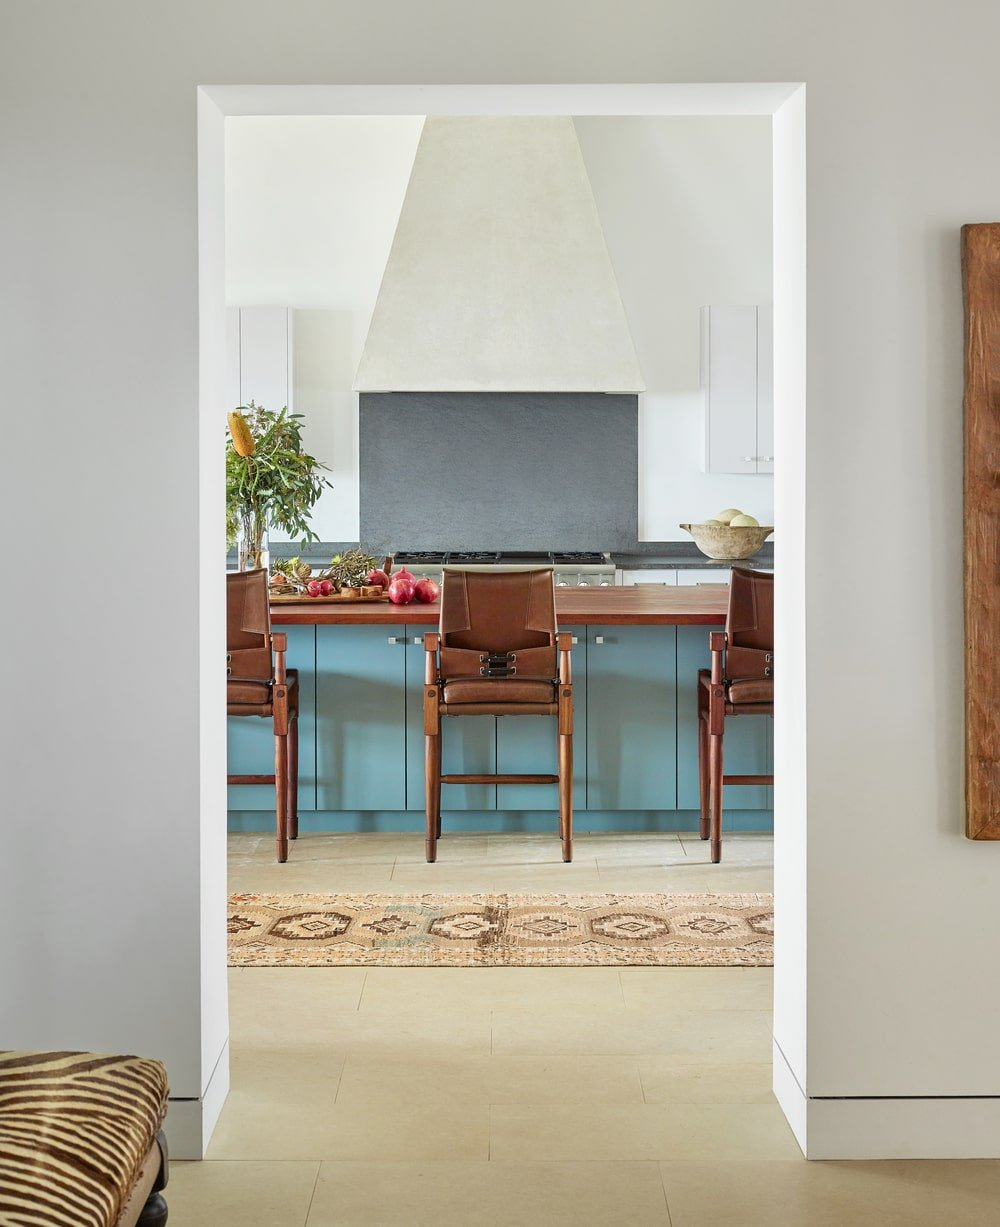 Through this entryway is the kitchen that has a breakfast bar paired with wooden stools.